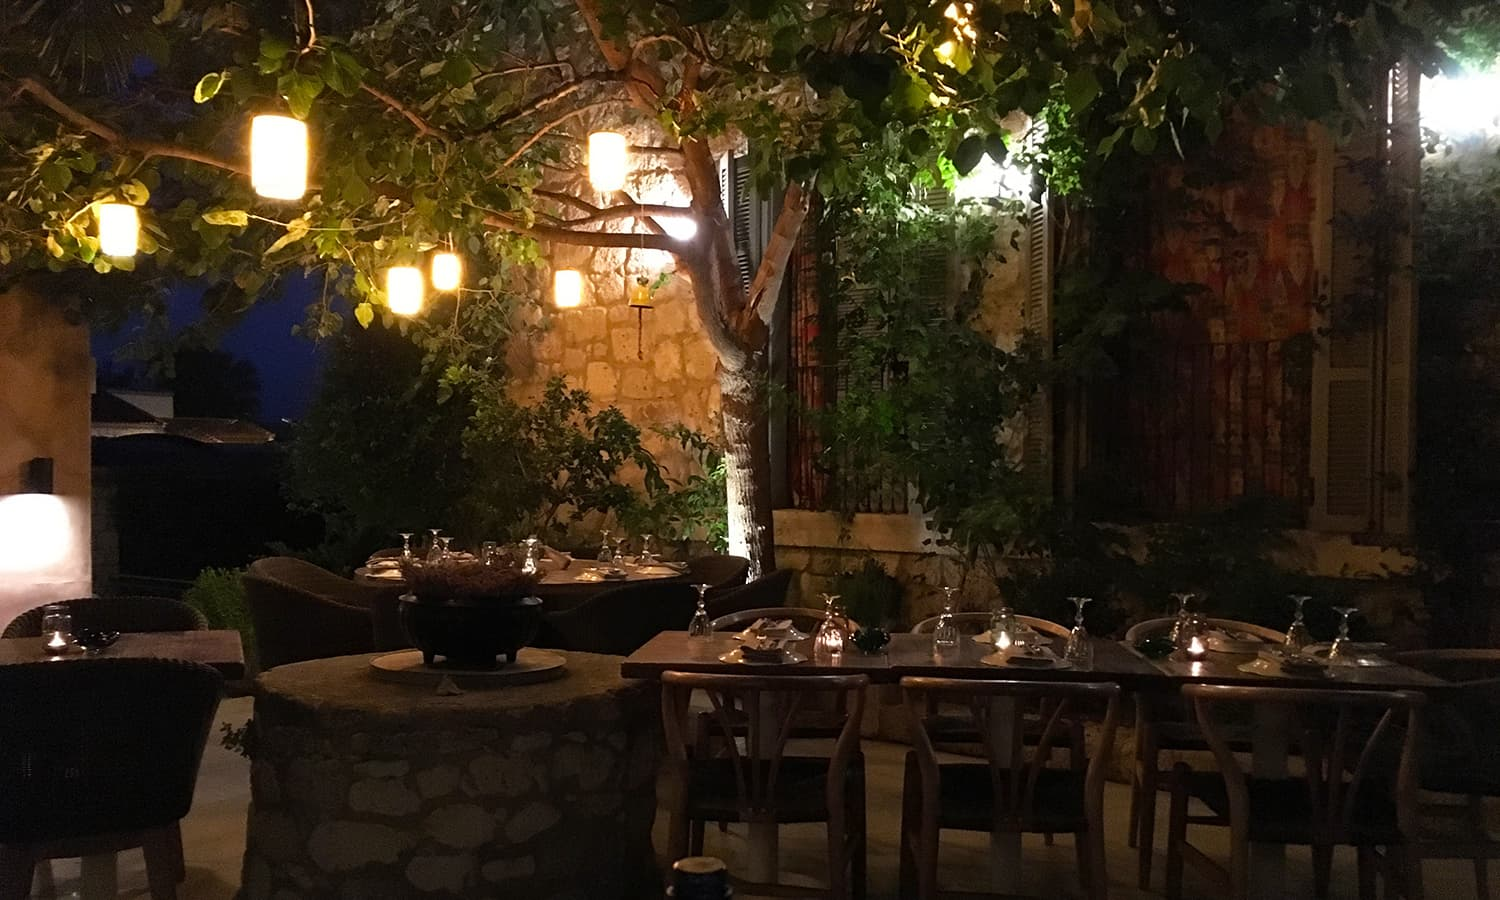 A beautifully lit courtyard at Cafe Agrilia.